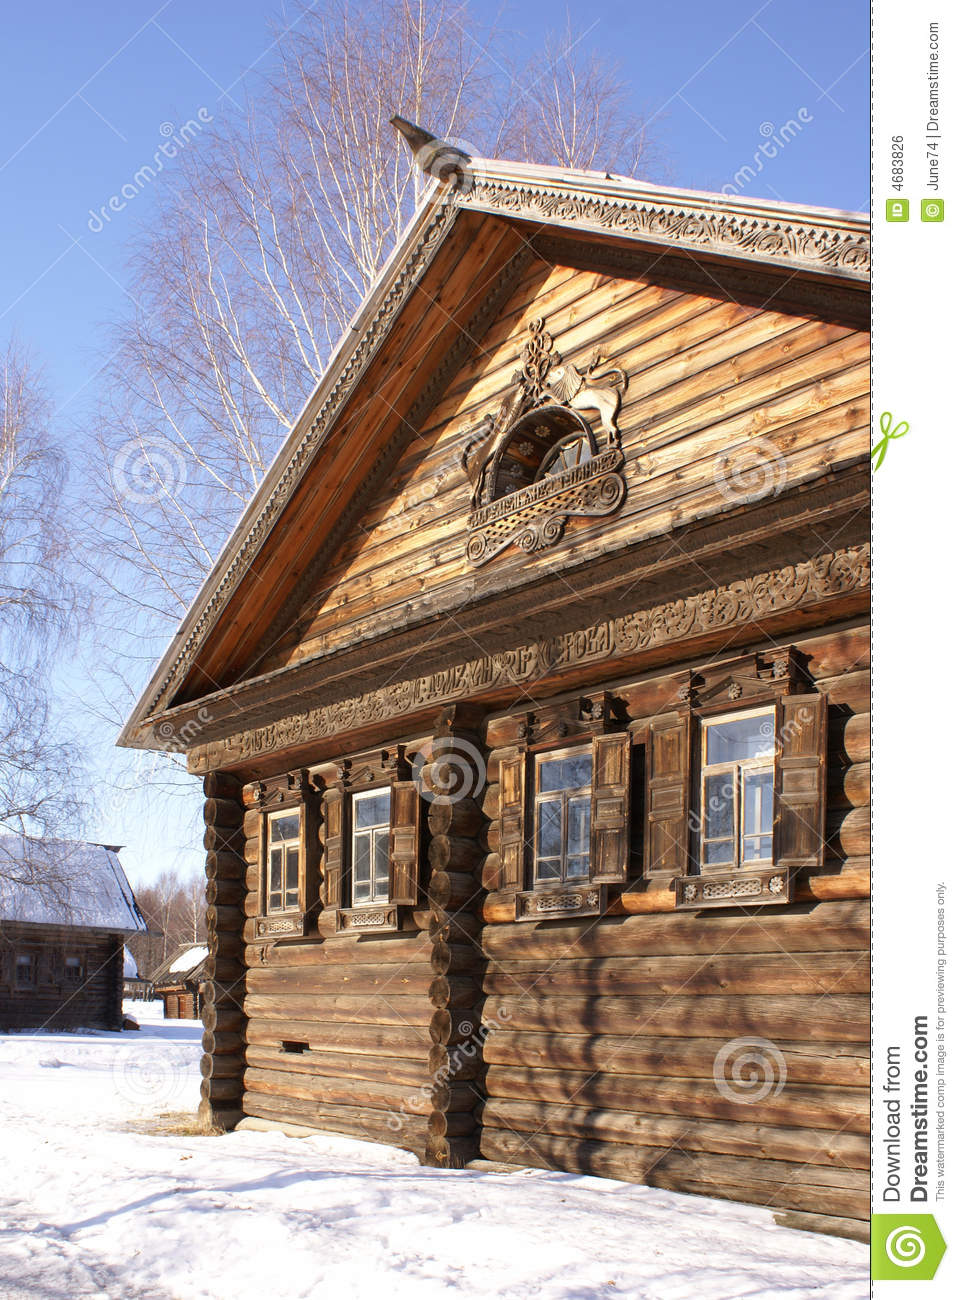 Log And Wood Plank Winter Home Stock Photo - Image of houses ... Plank Wood Houses on wood panel houses, native american wooden houses, egg houses, wood tree houses, wood slat houses, rope houses, wood club houses, nice newer houses, dirt houses, wood log houses, sheep houses, wood block houses, new and nice wooden houses, northwest tribe houses, wood stick houses, colonial america houses, wood beam houses, wood siding houses, wood brown houses, new roofs for houses,